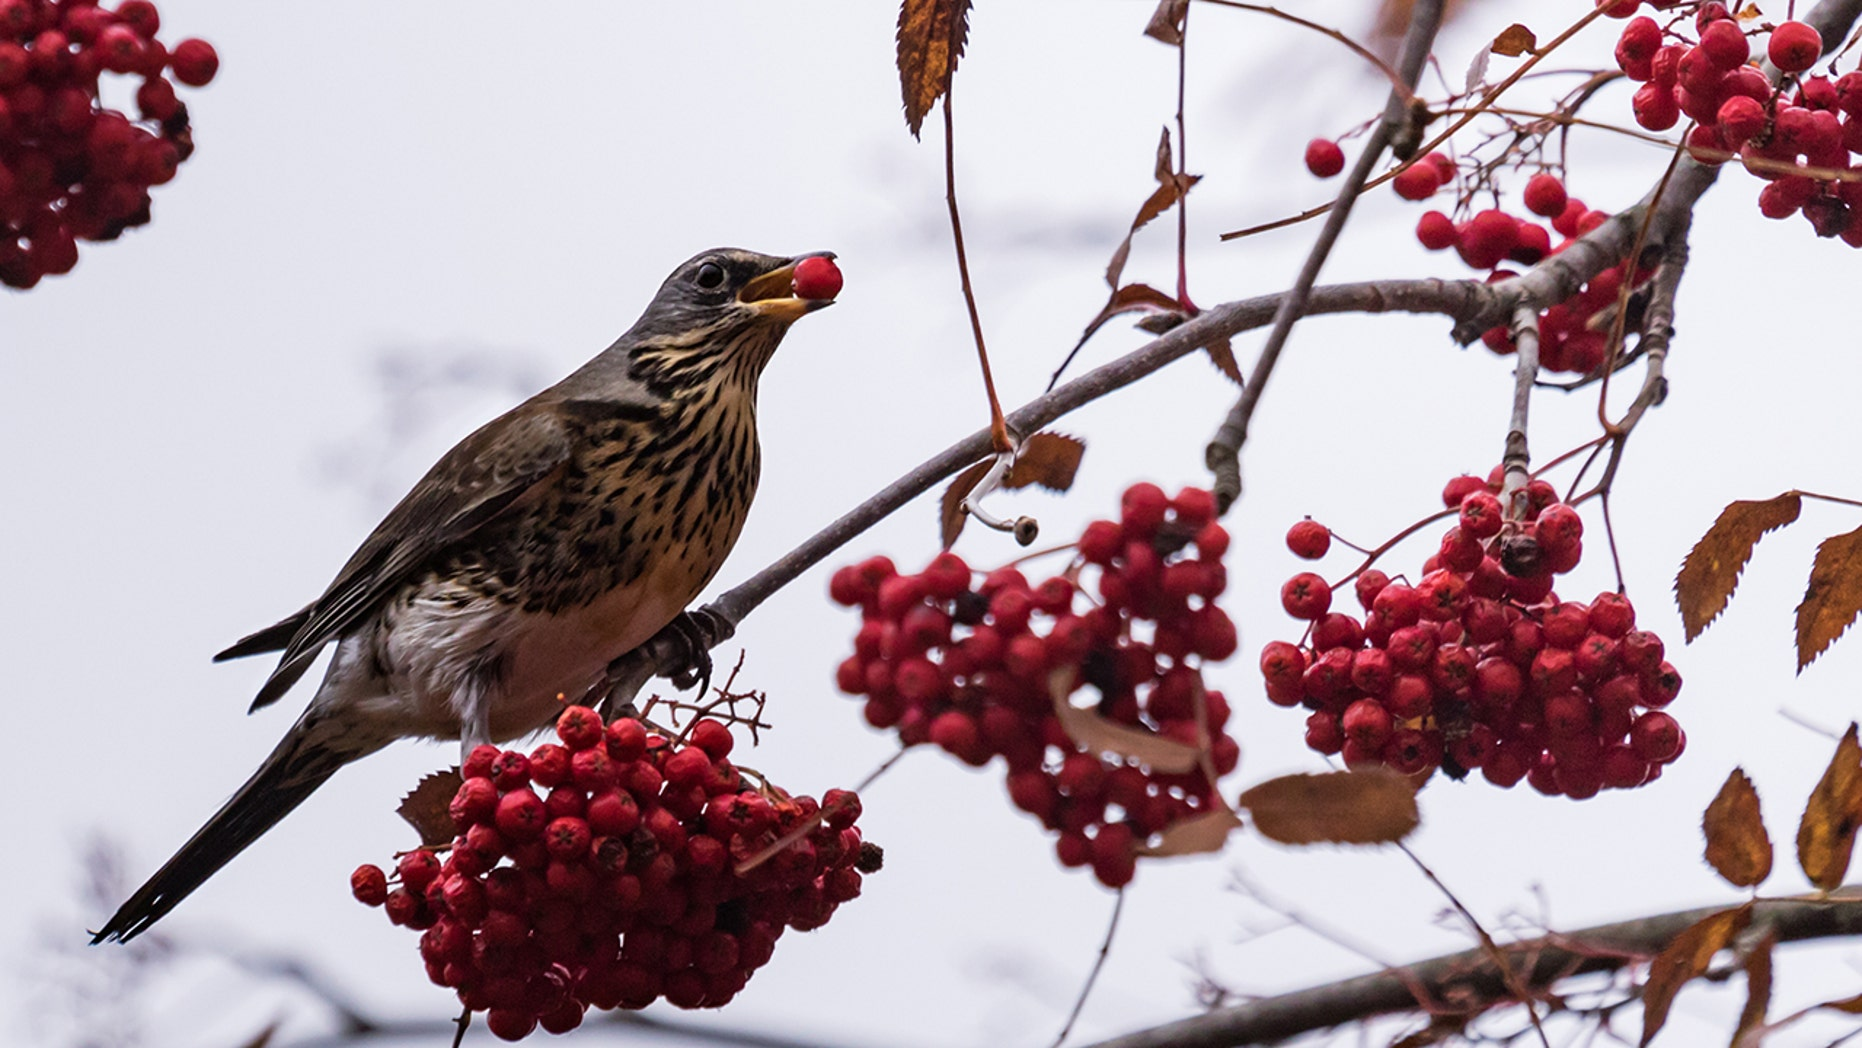 Birds Are Acting Erratically in Minnesota. Blame It on the Alcohol